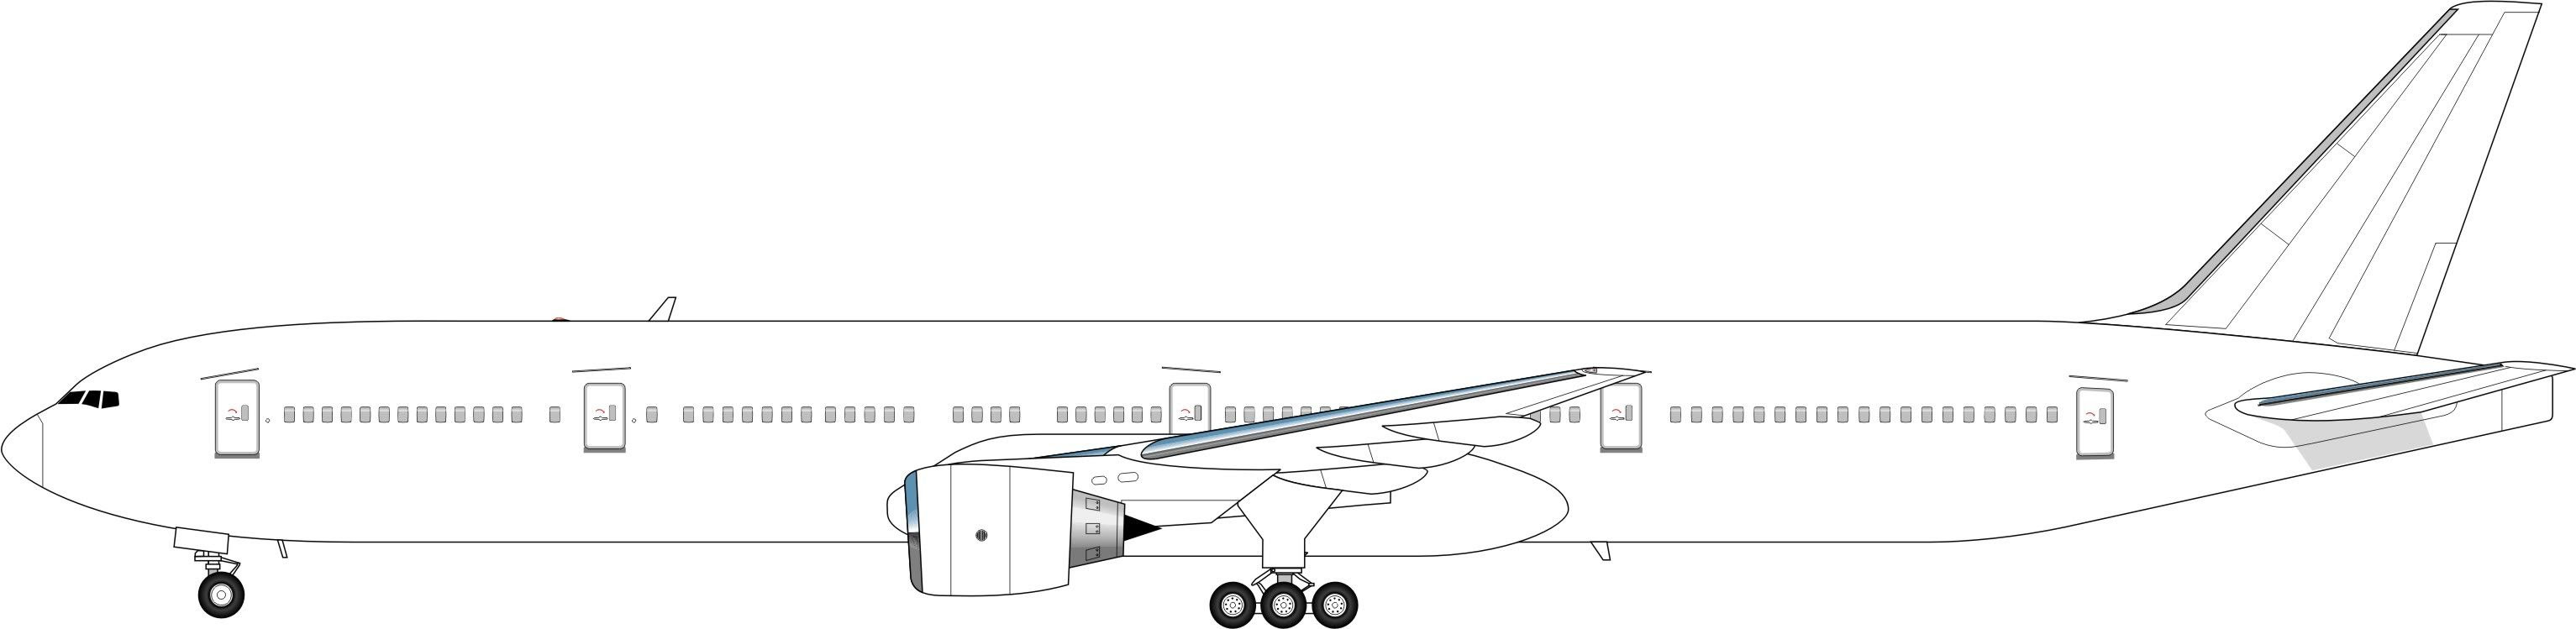 1000+ images about Boeing-777 on Pinterest   Planes, Sprays and Braces